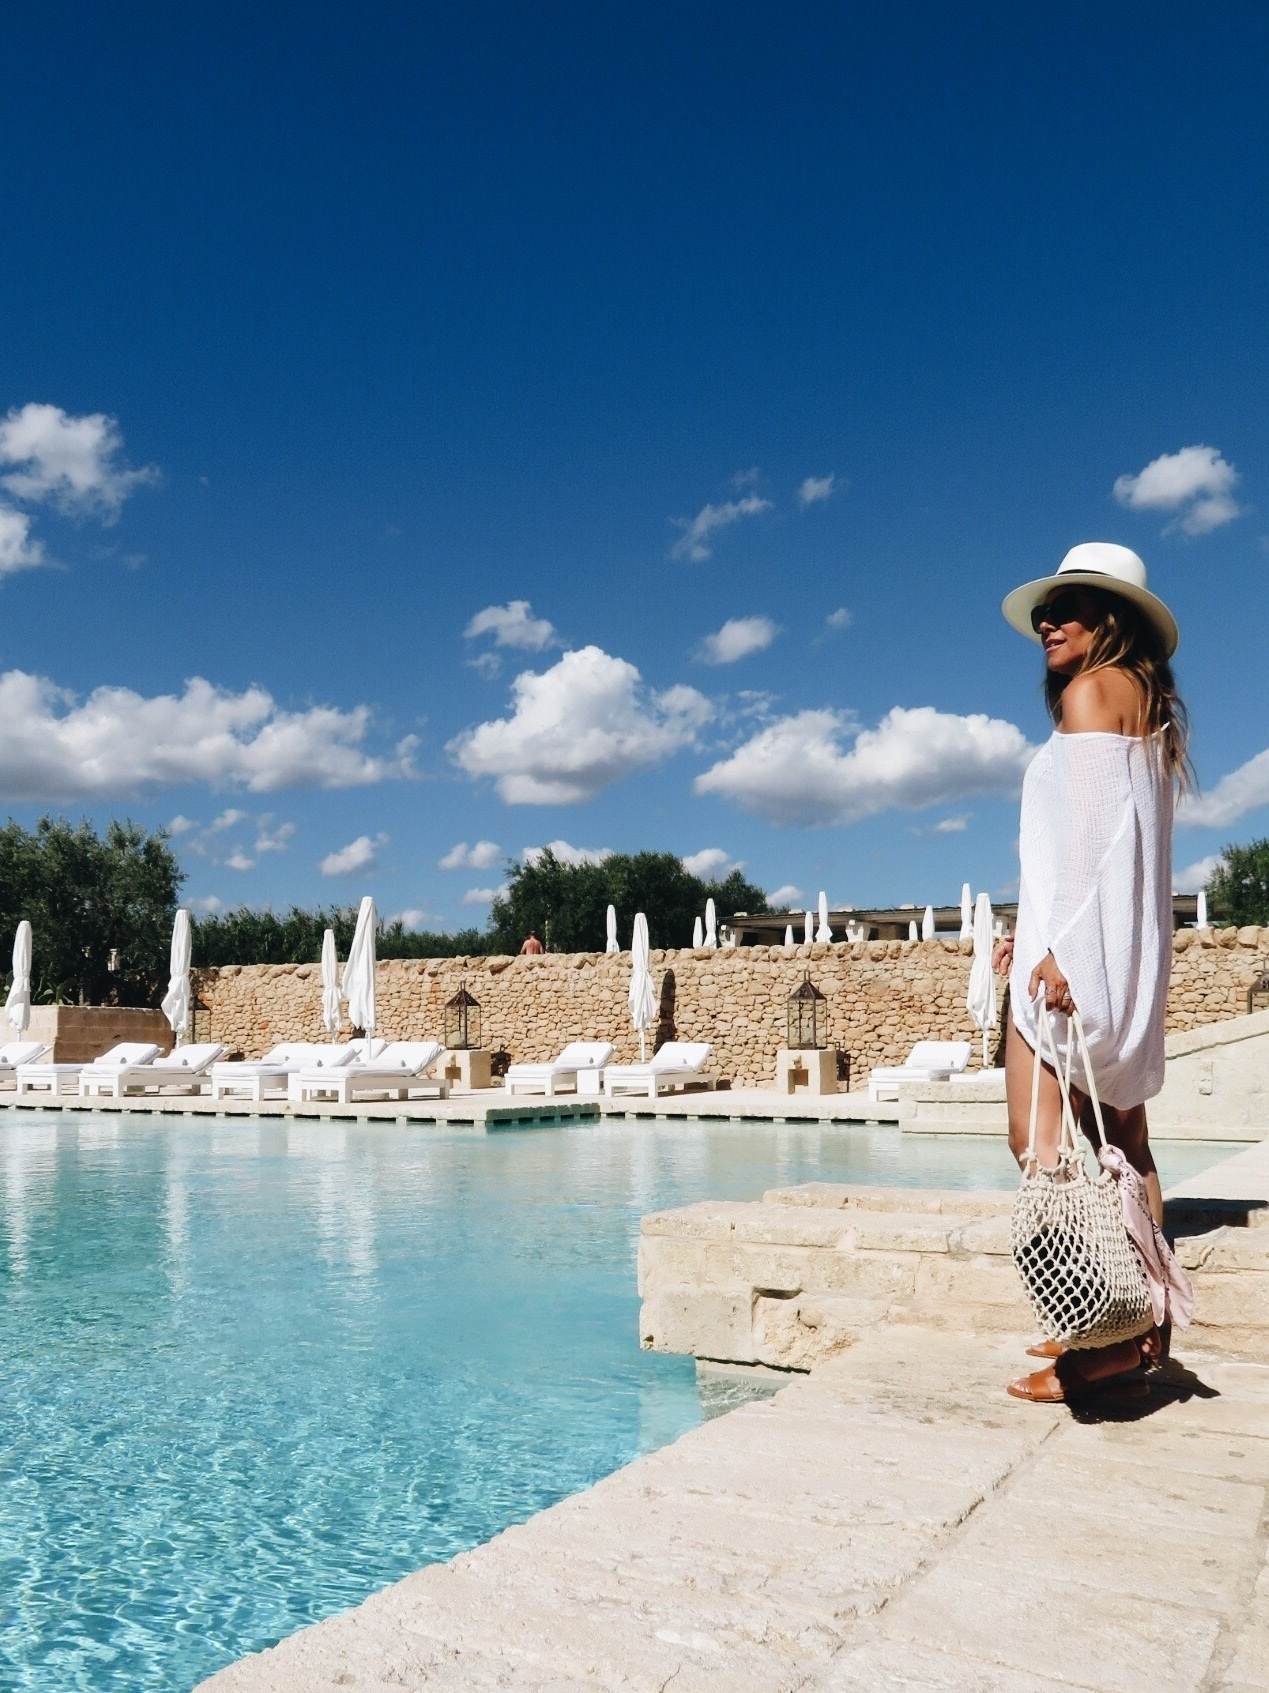 Poolside at the  Borgo Egnazia